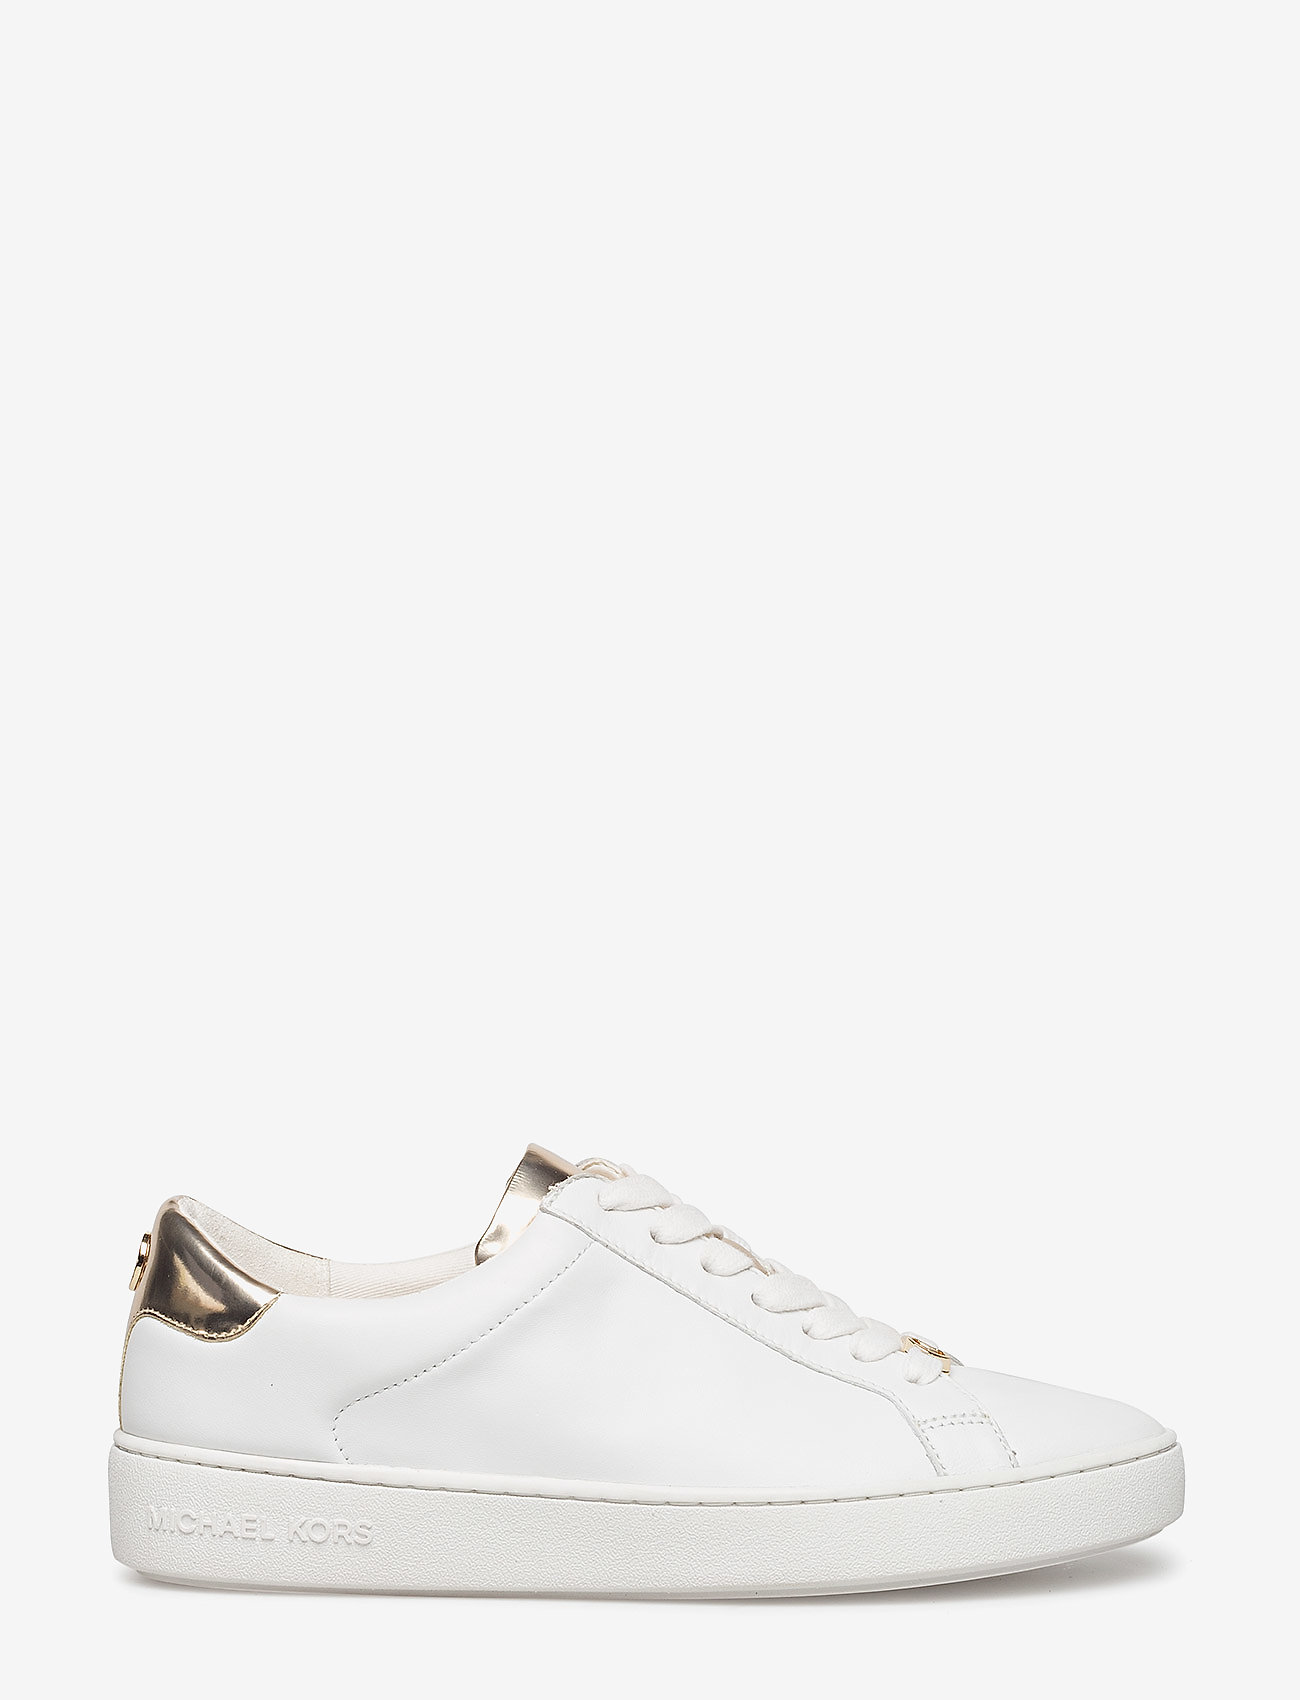 Michael Kors Shoes - IRVING LACE UP - lage sneakers - opt/plgold - 1